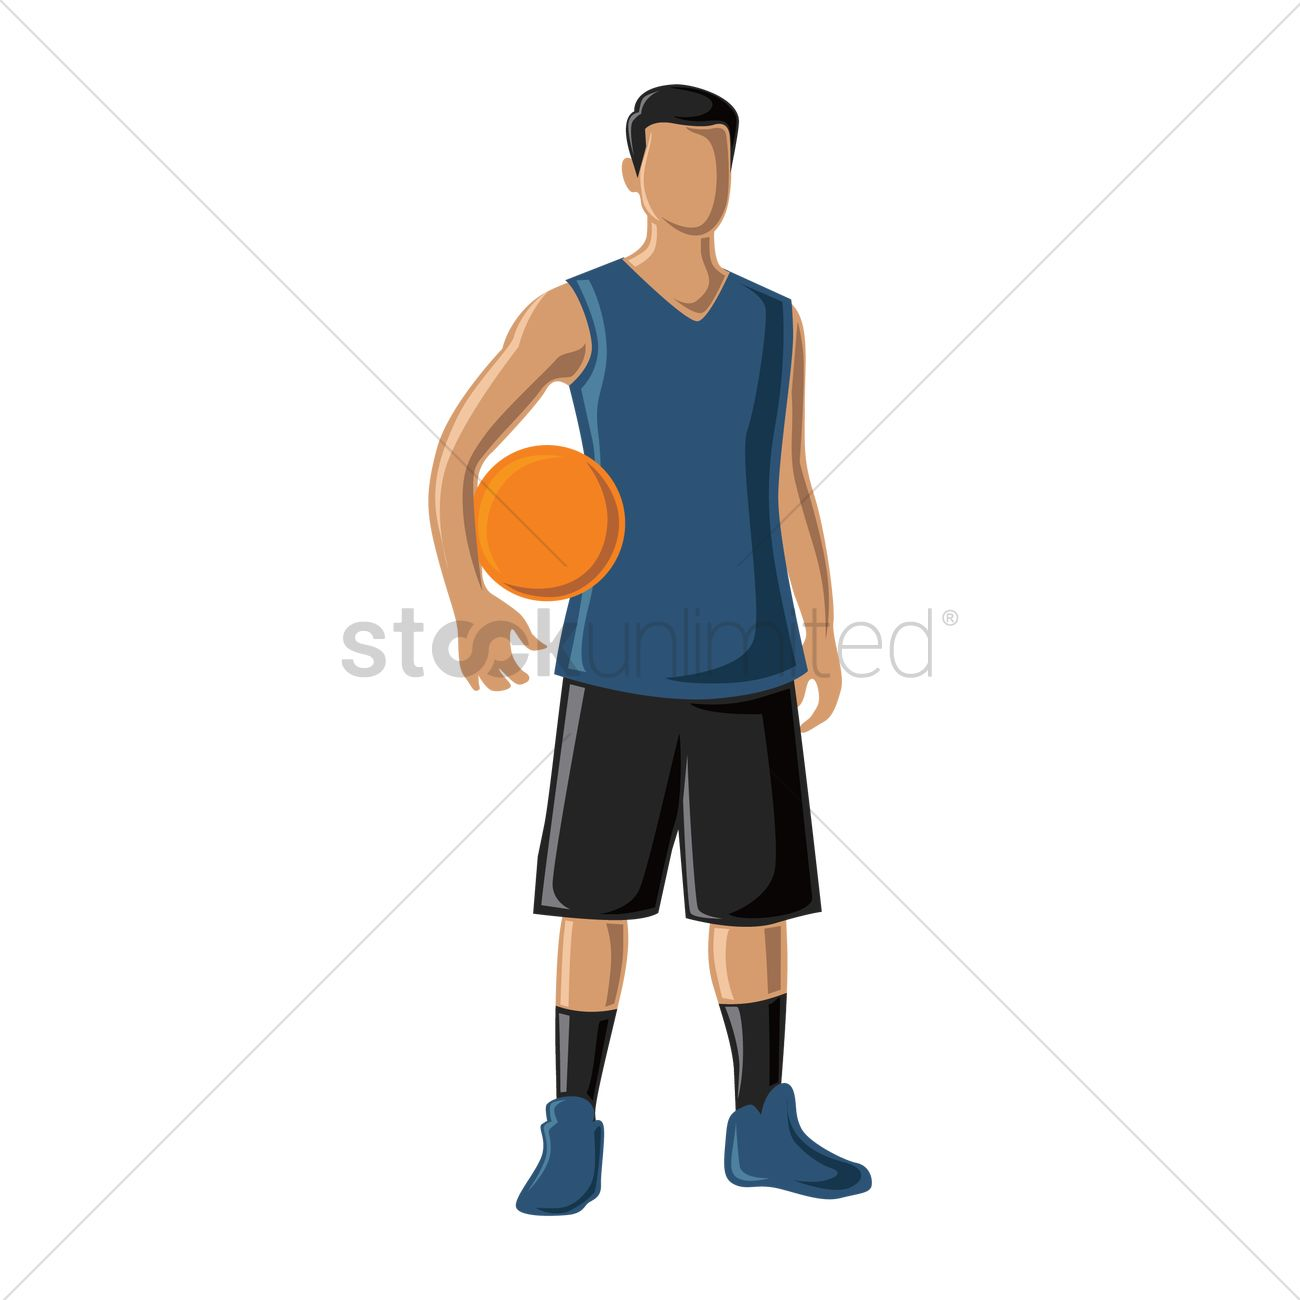 free basketball player holding ball vector image 1566411